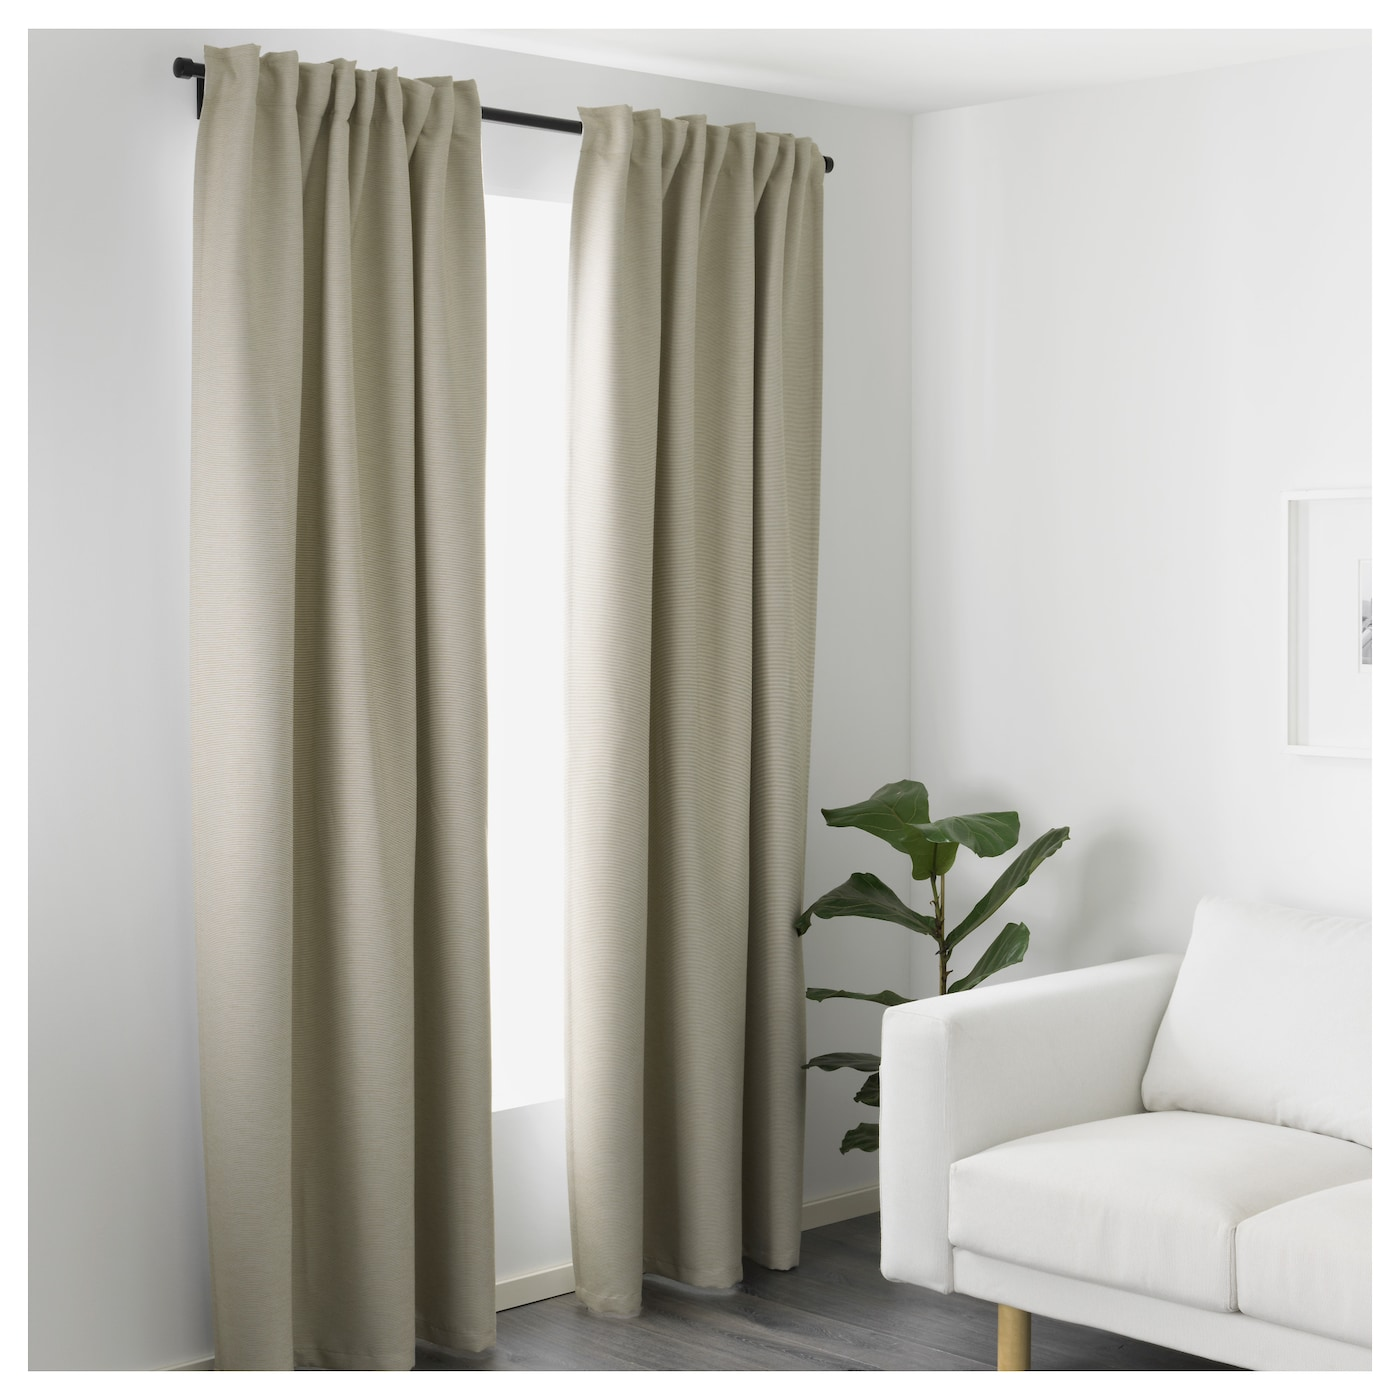 Curtain Ikea Vilborg Curtains 1 Pair Beige 145 X 250 Cm Ikea